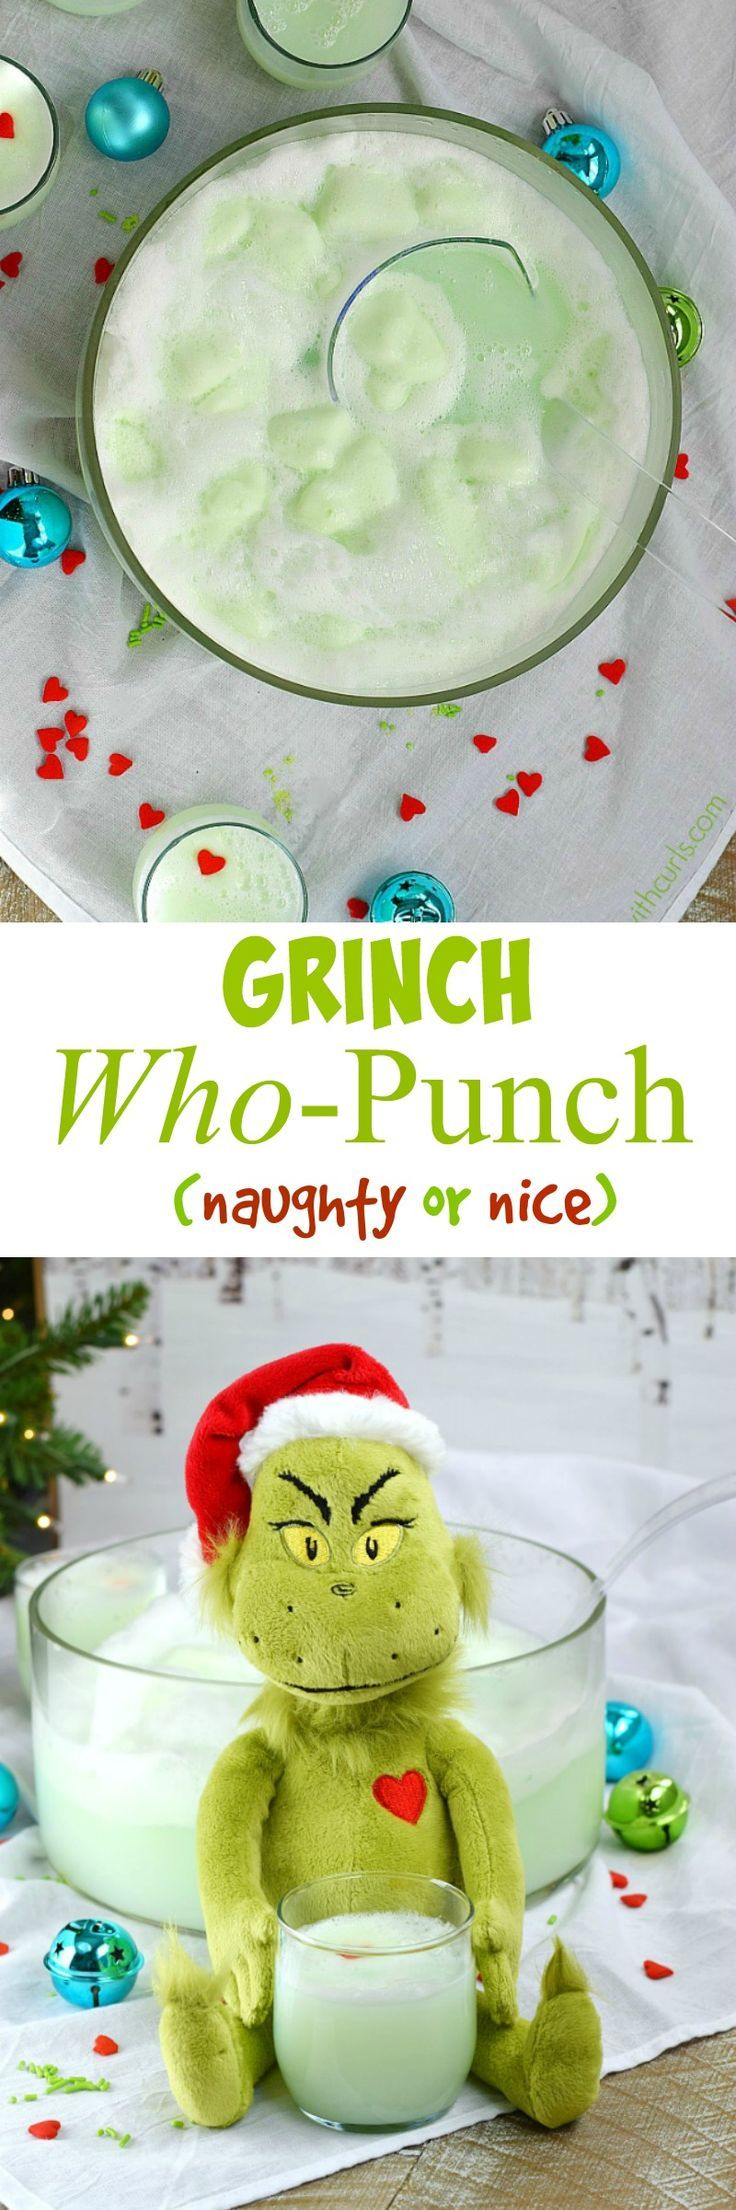 Are your party guests naughty or nice? You get to decide when you make this Grinch Who-Punch for your next holiday party. It's super easy to make and your guest will love it | cookingwithcurls.com